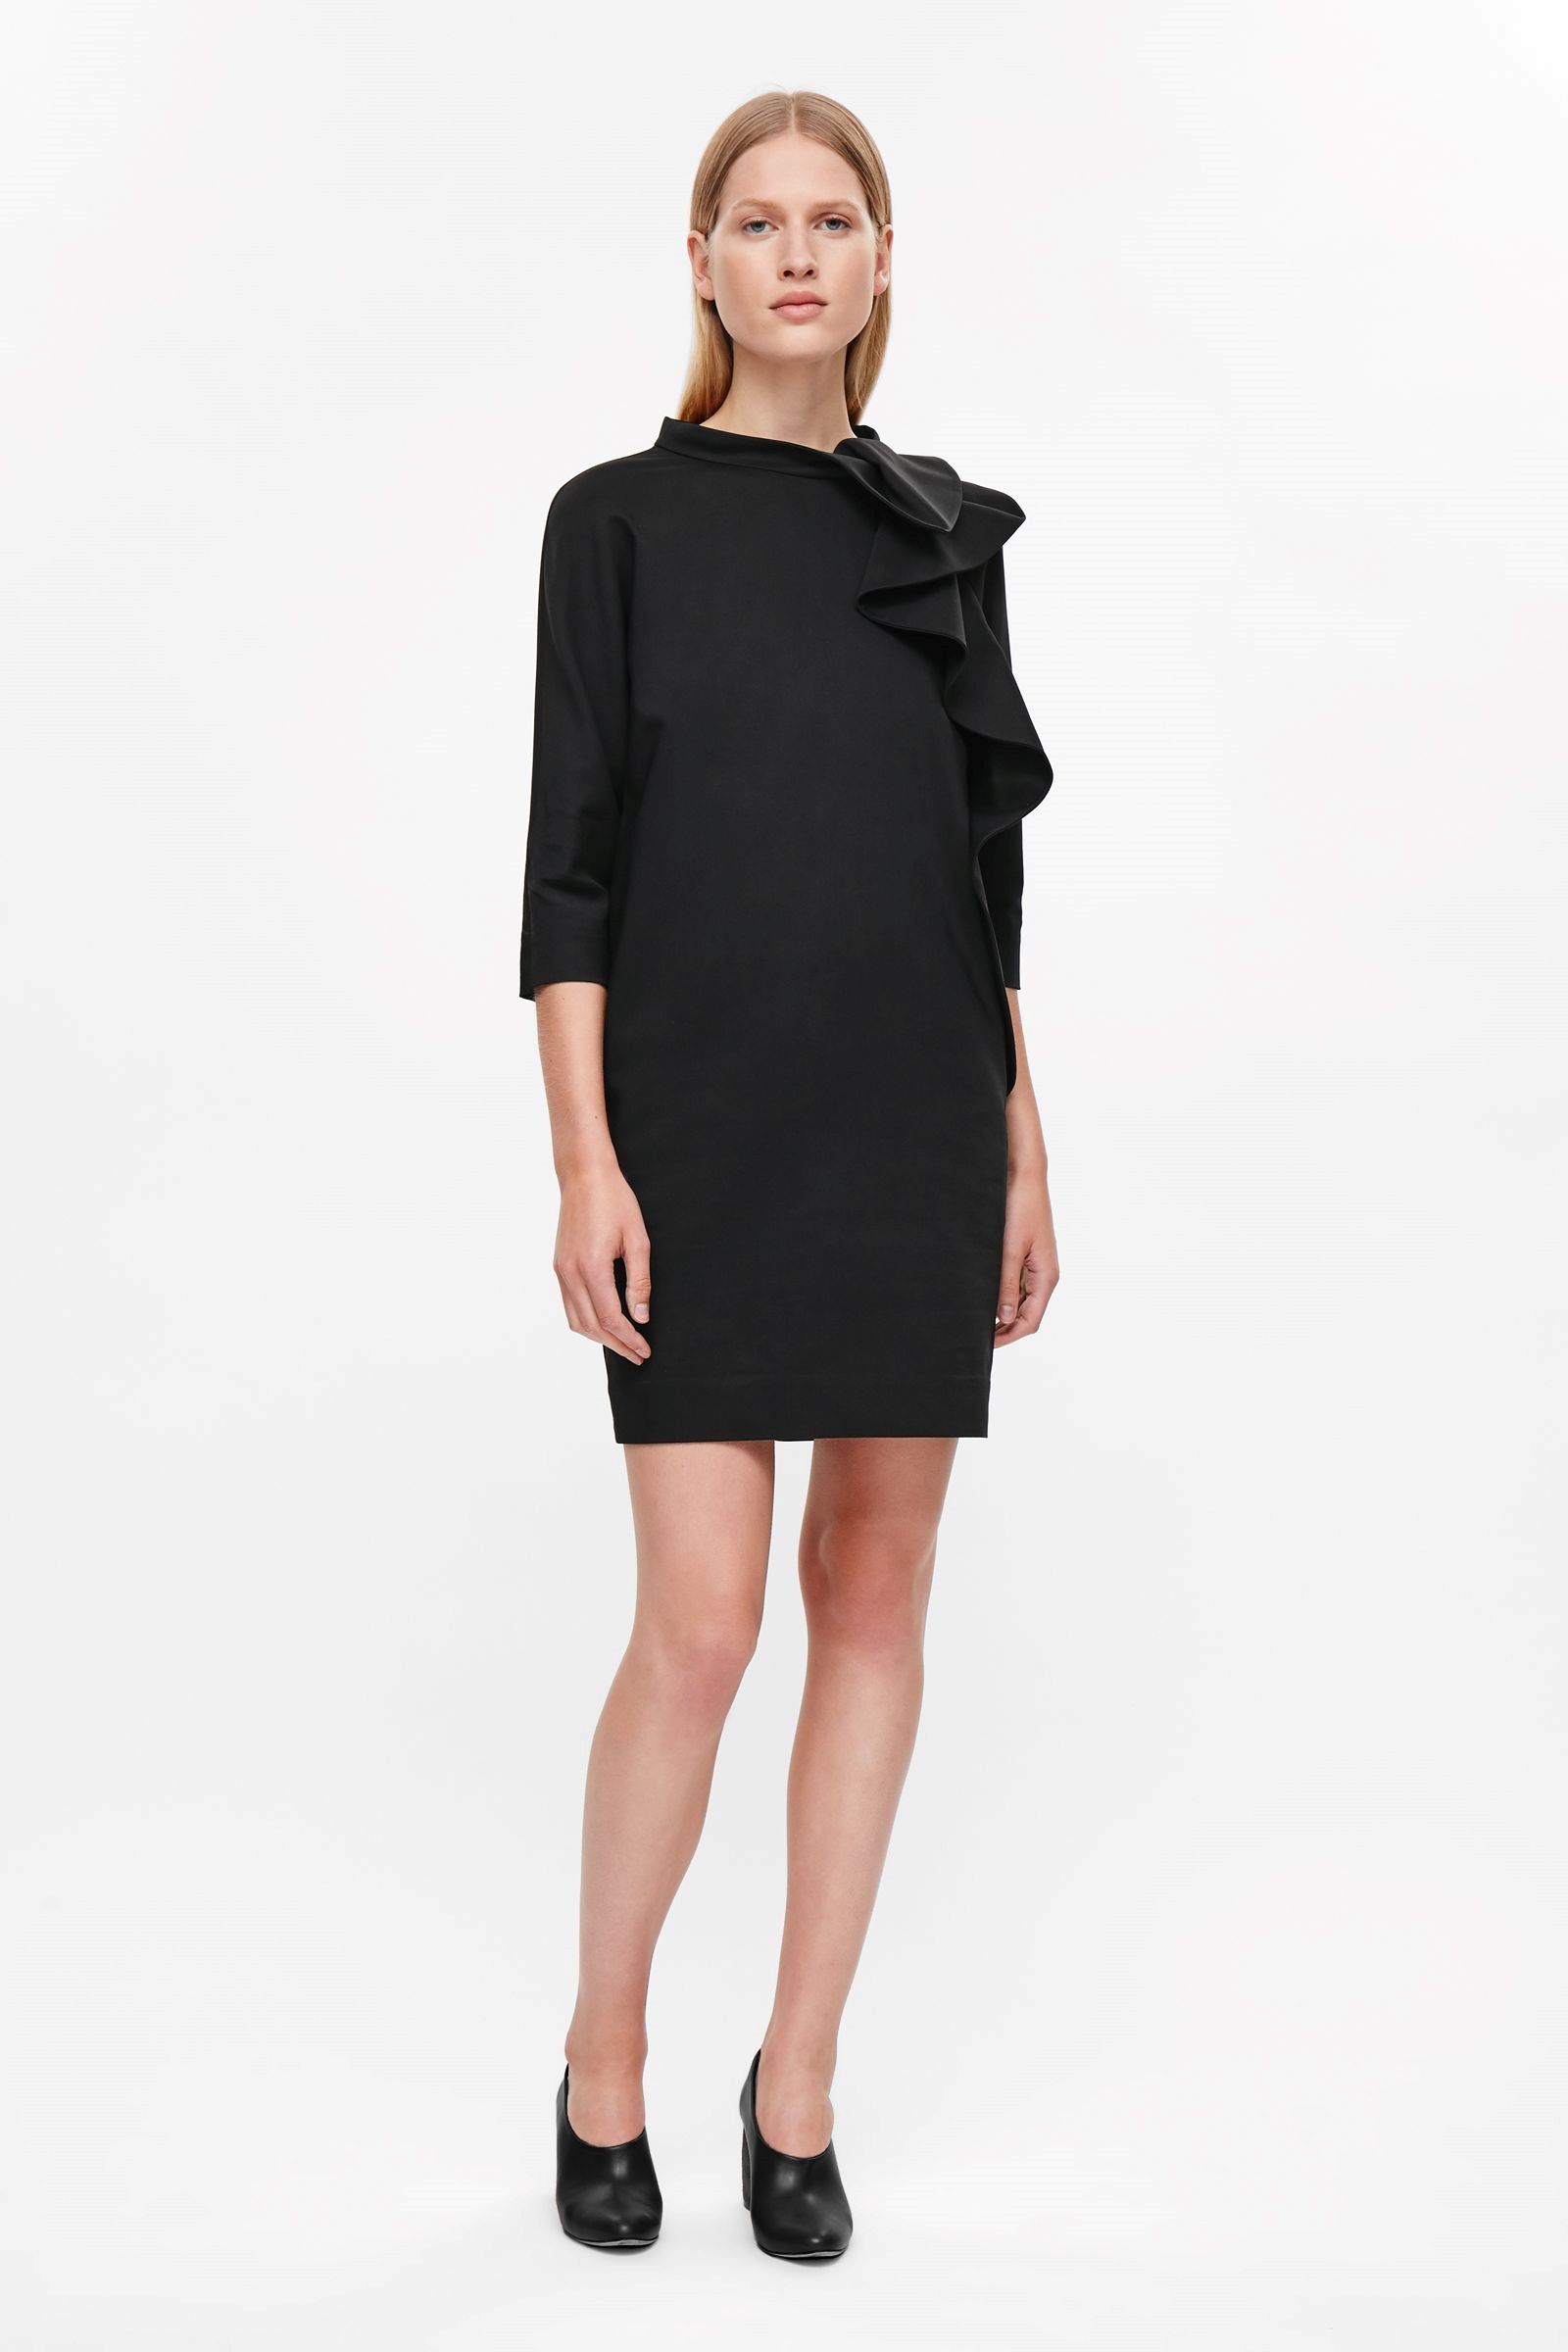 COS image 1 of Rounded drape dress in Black | Cool | Pinterest | Black